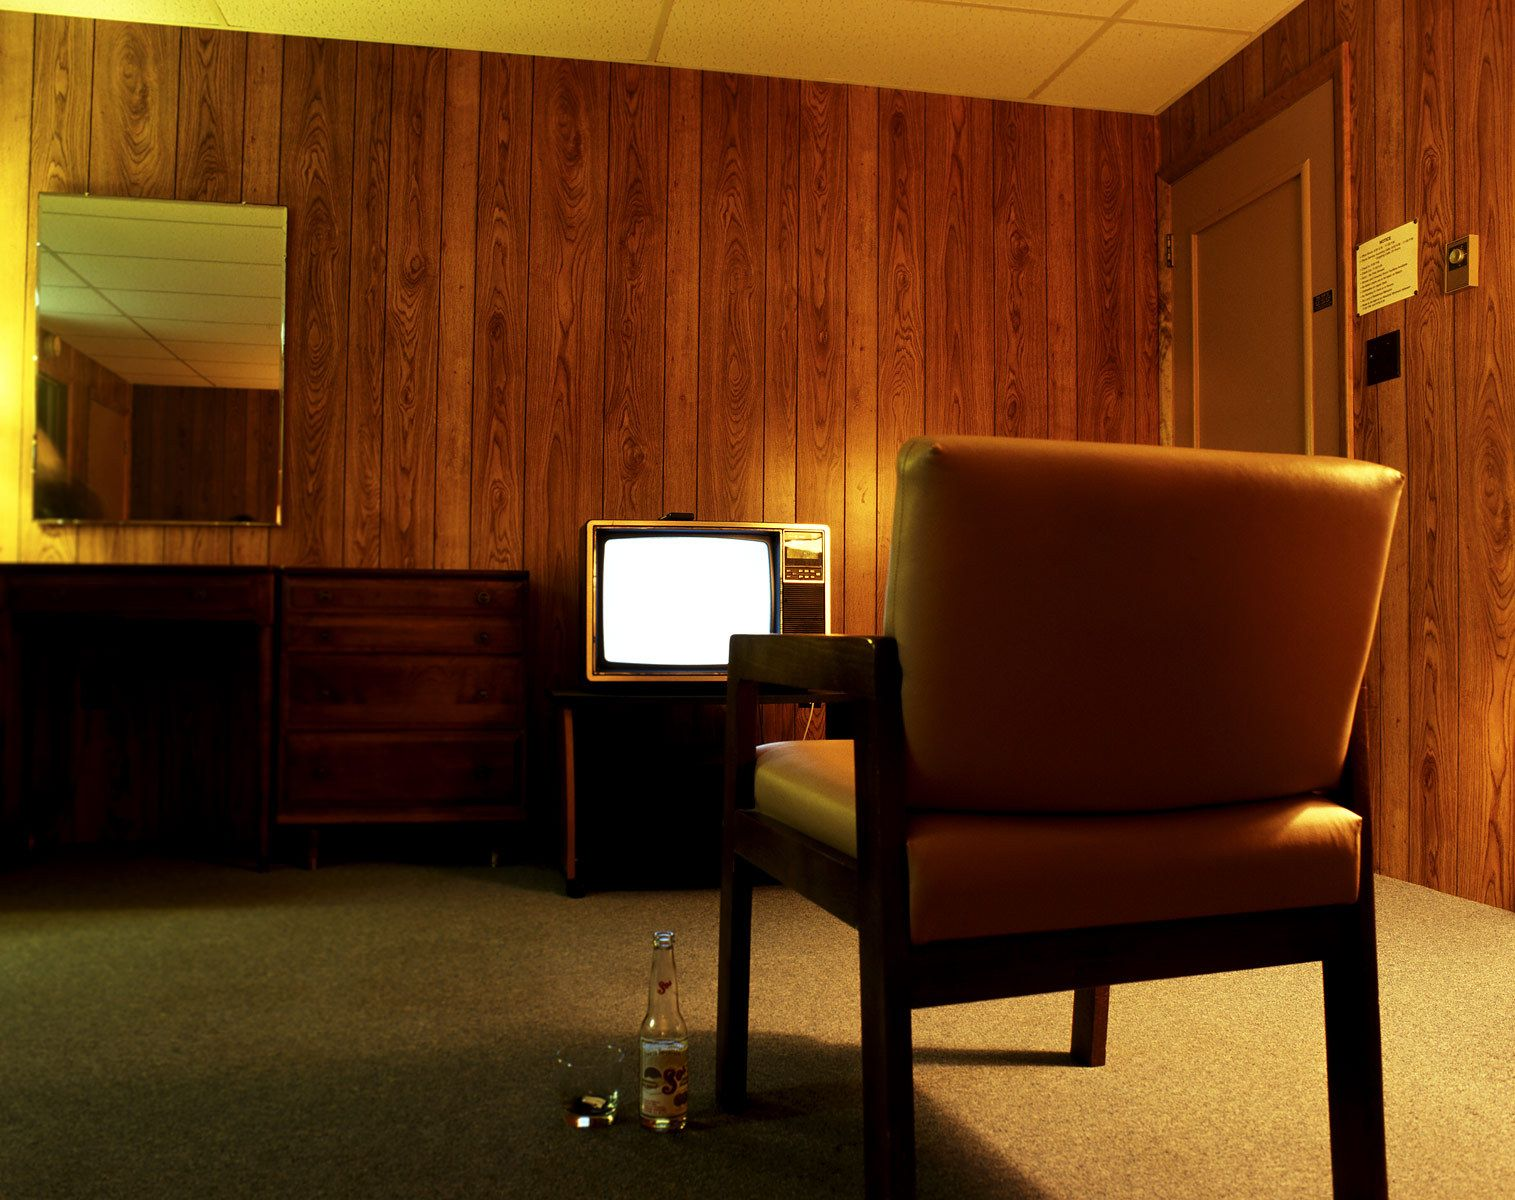 Sharp Delaware Motel Room Motel Room Interior Interior Design